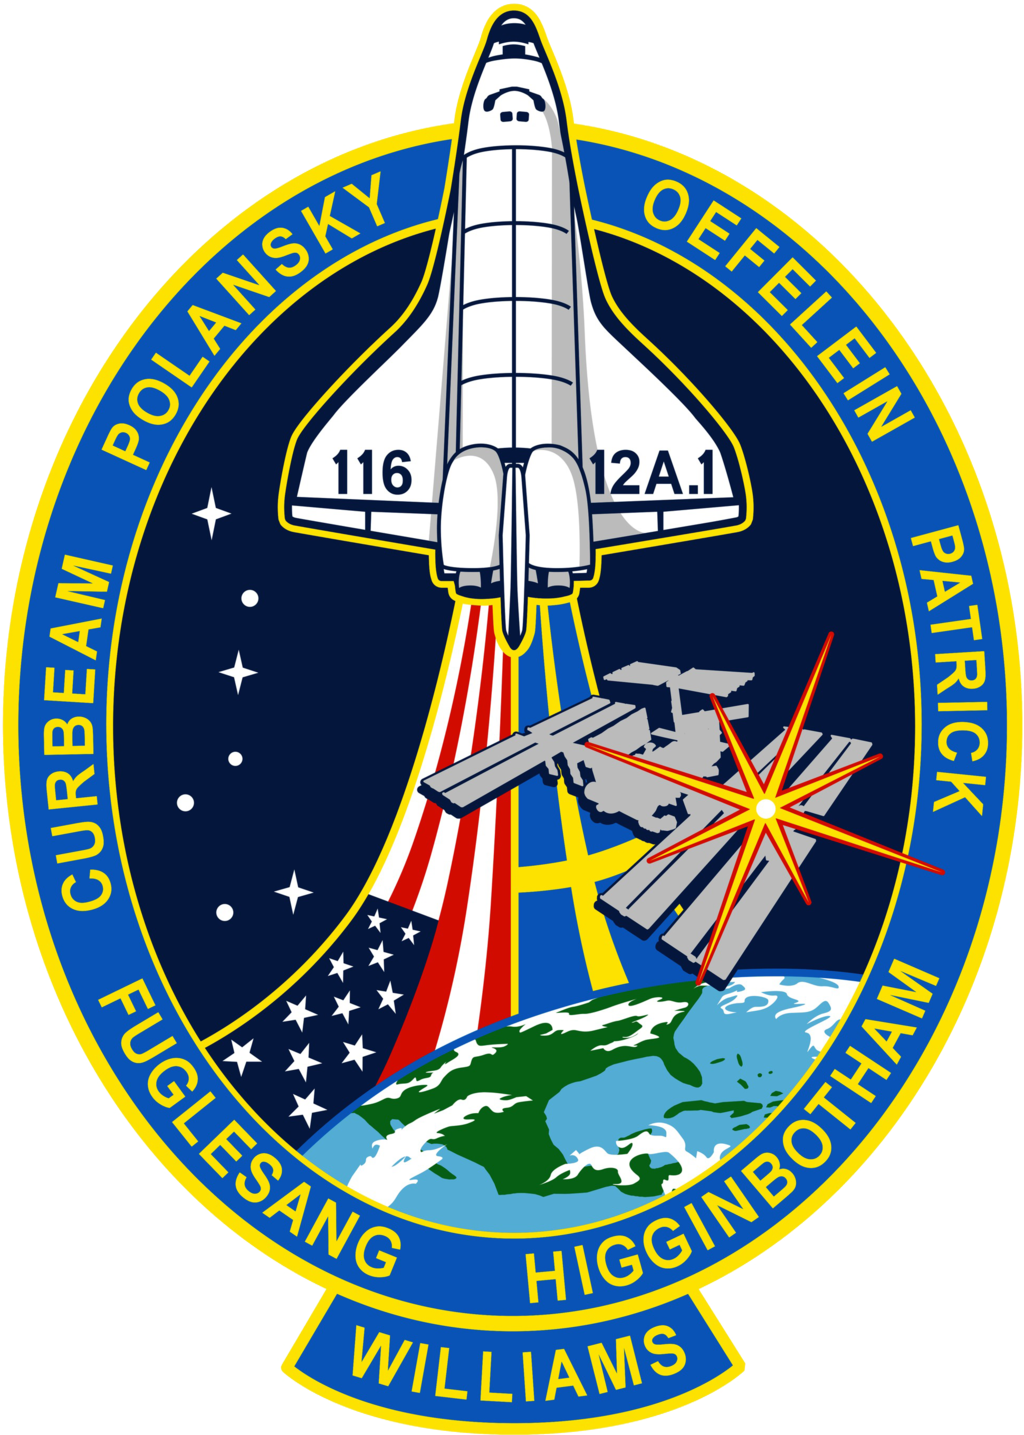 The sts patch design. Missions clipart assembly